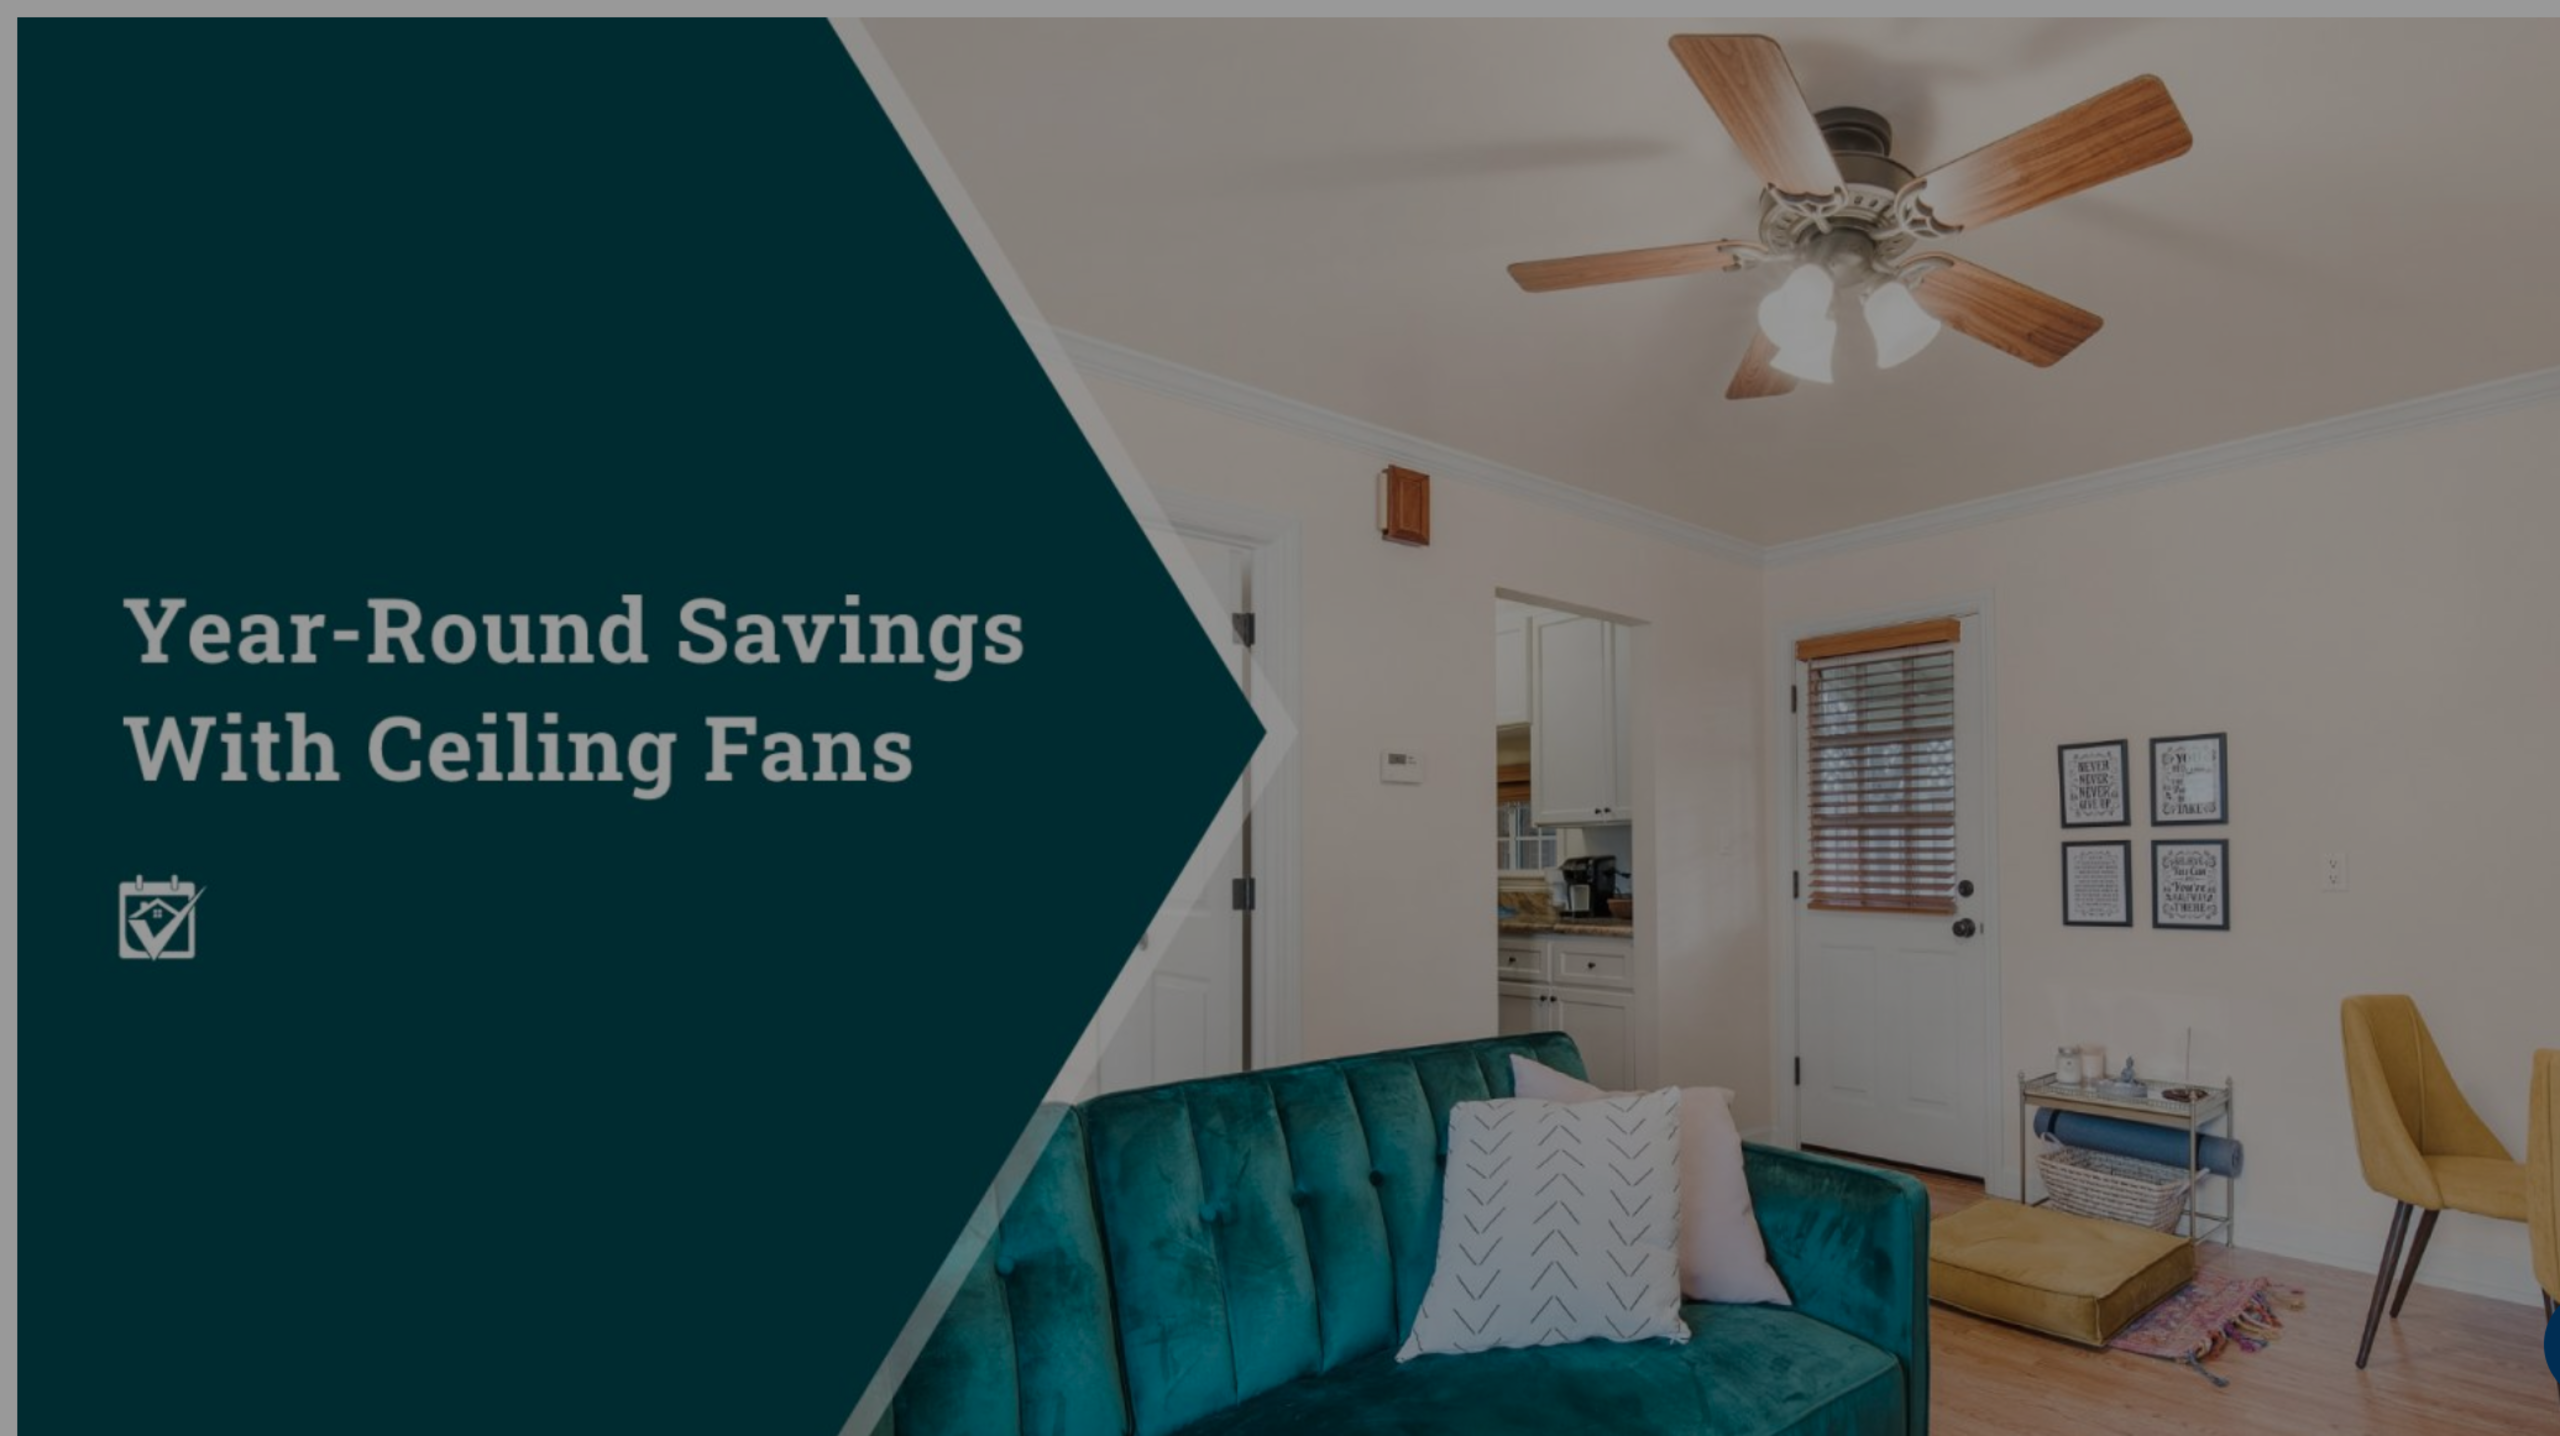 Year-Round Savings With Ceiling Fans